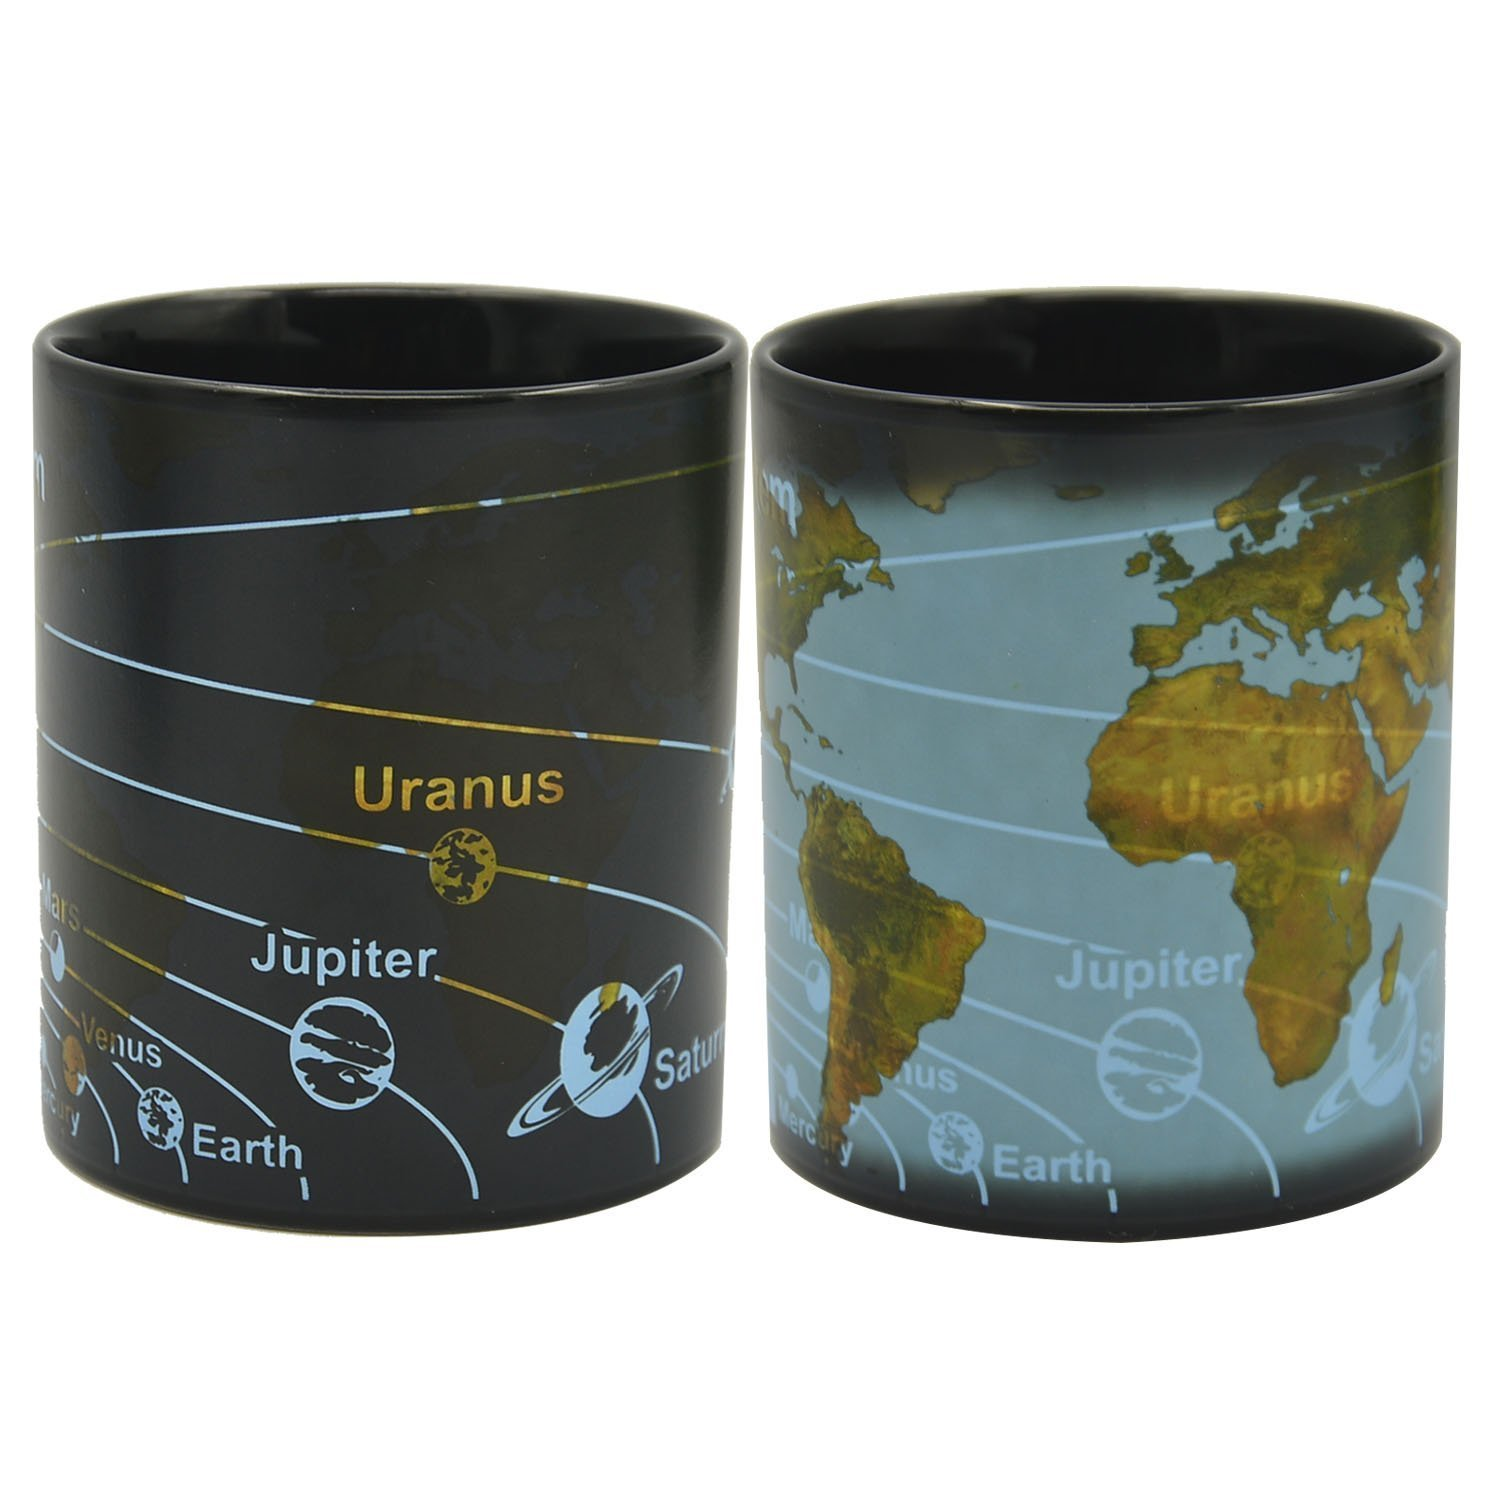 Magic Porcelain Coffee Mug Solar System Ceramic Heat Sensitive Color Changing Tea Cup,Best Birthday Gifts,13 Ounce - BPA Free Ceramic - Comes in a Fun Colorful Gift Box (Earth)